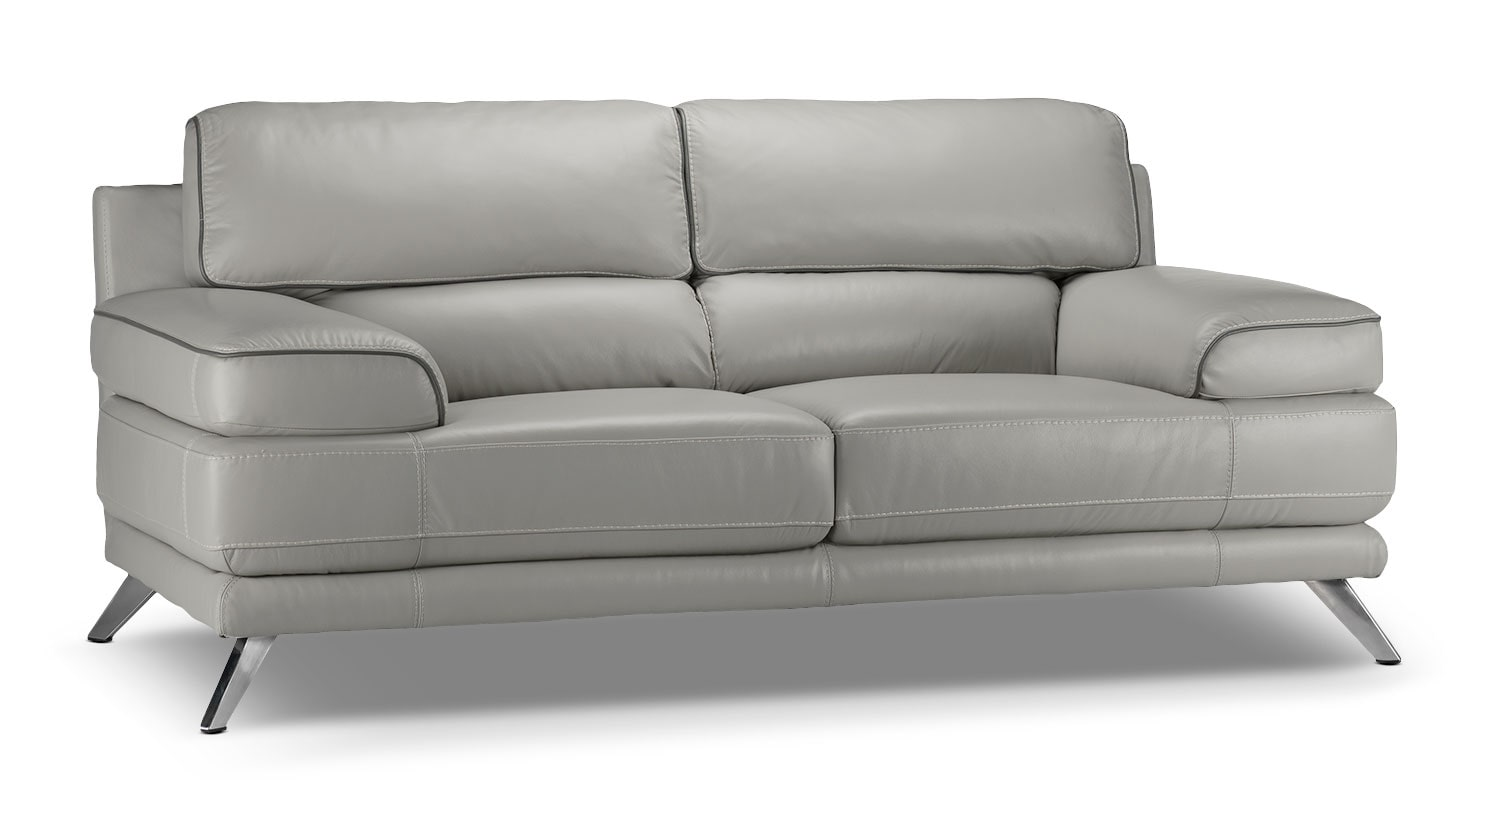 Sutton Loveseat - Grey